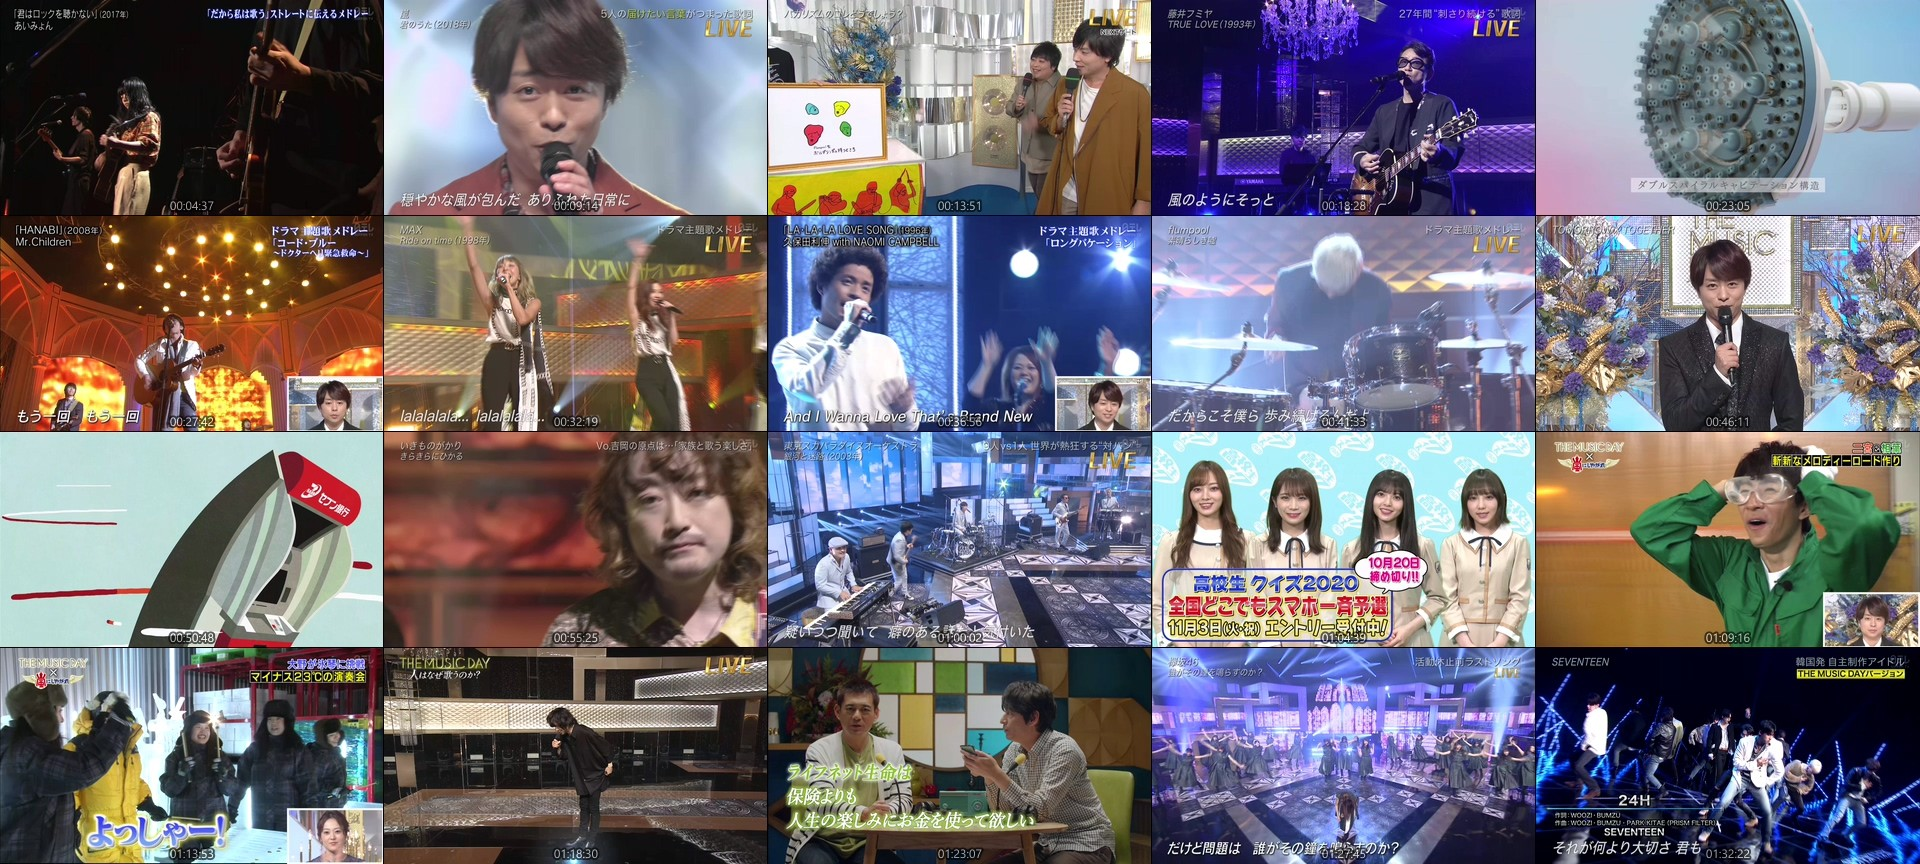 THE MUSIC DAY – THE MUSIC DAY Part1 (NTV 2020.09.12)